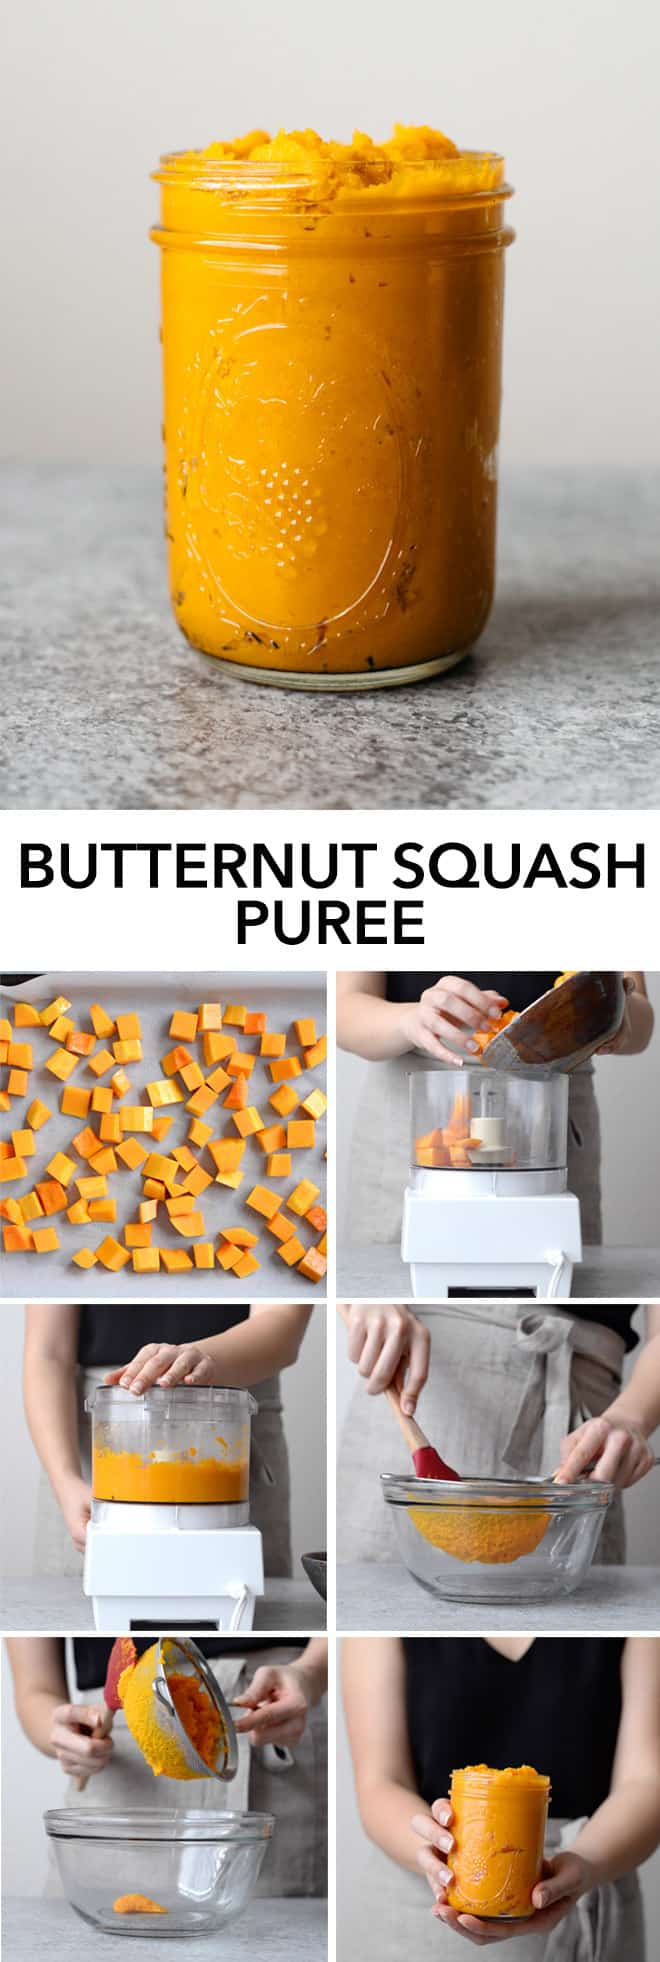 How to Make Butternut Squash Puree - here is a simple way to make butternut squash puree at home! by @healthynibs